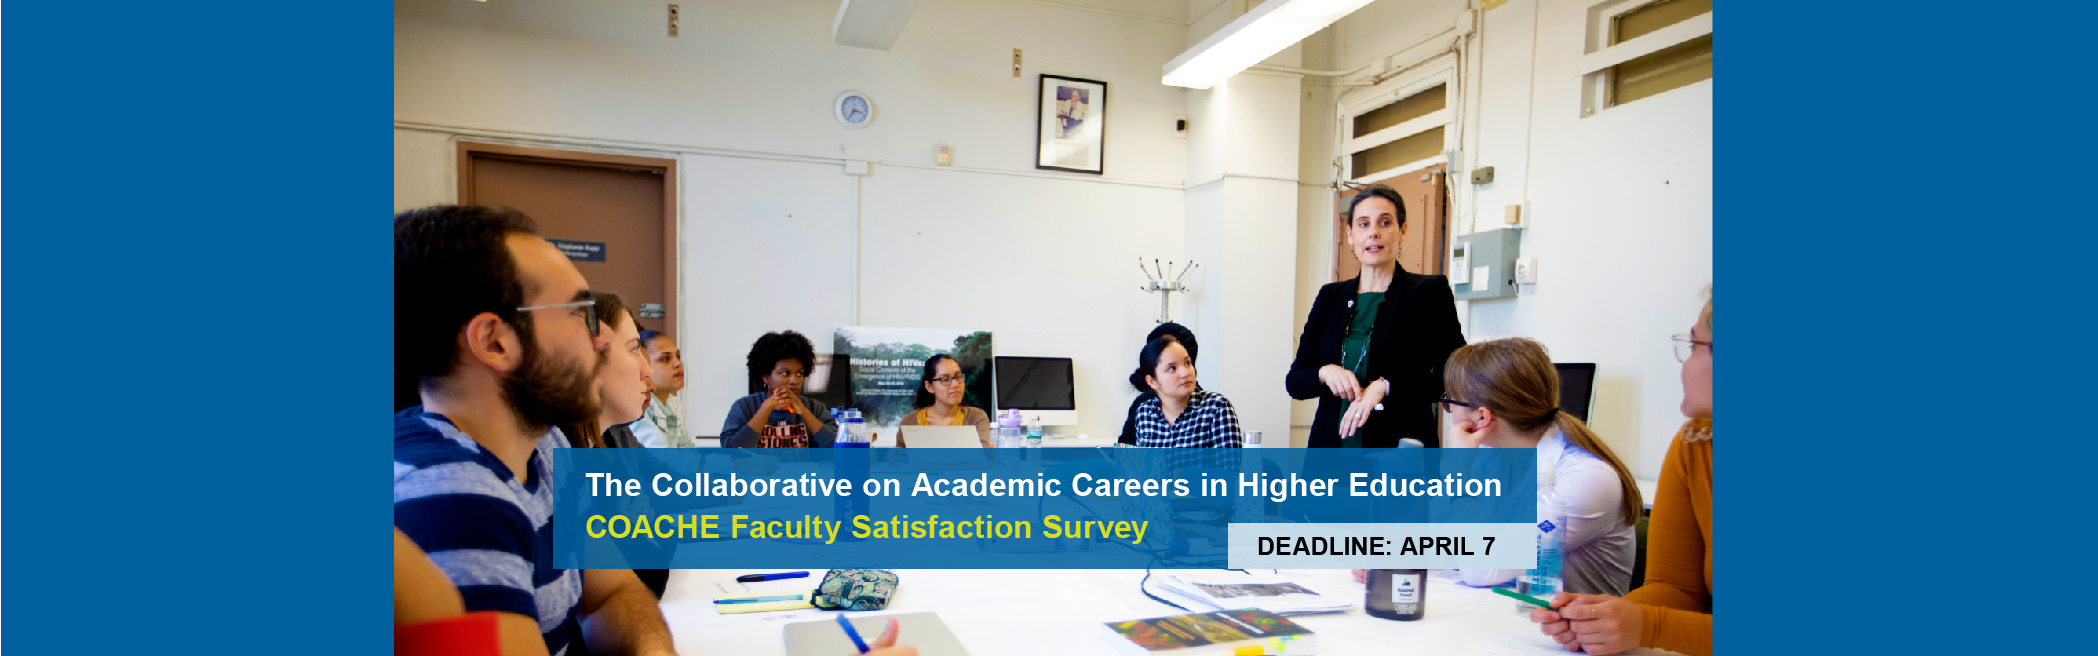 The Collaborative on Academic Careers in Higher Education Survey (COACHE)